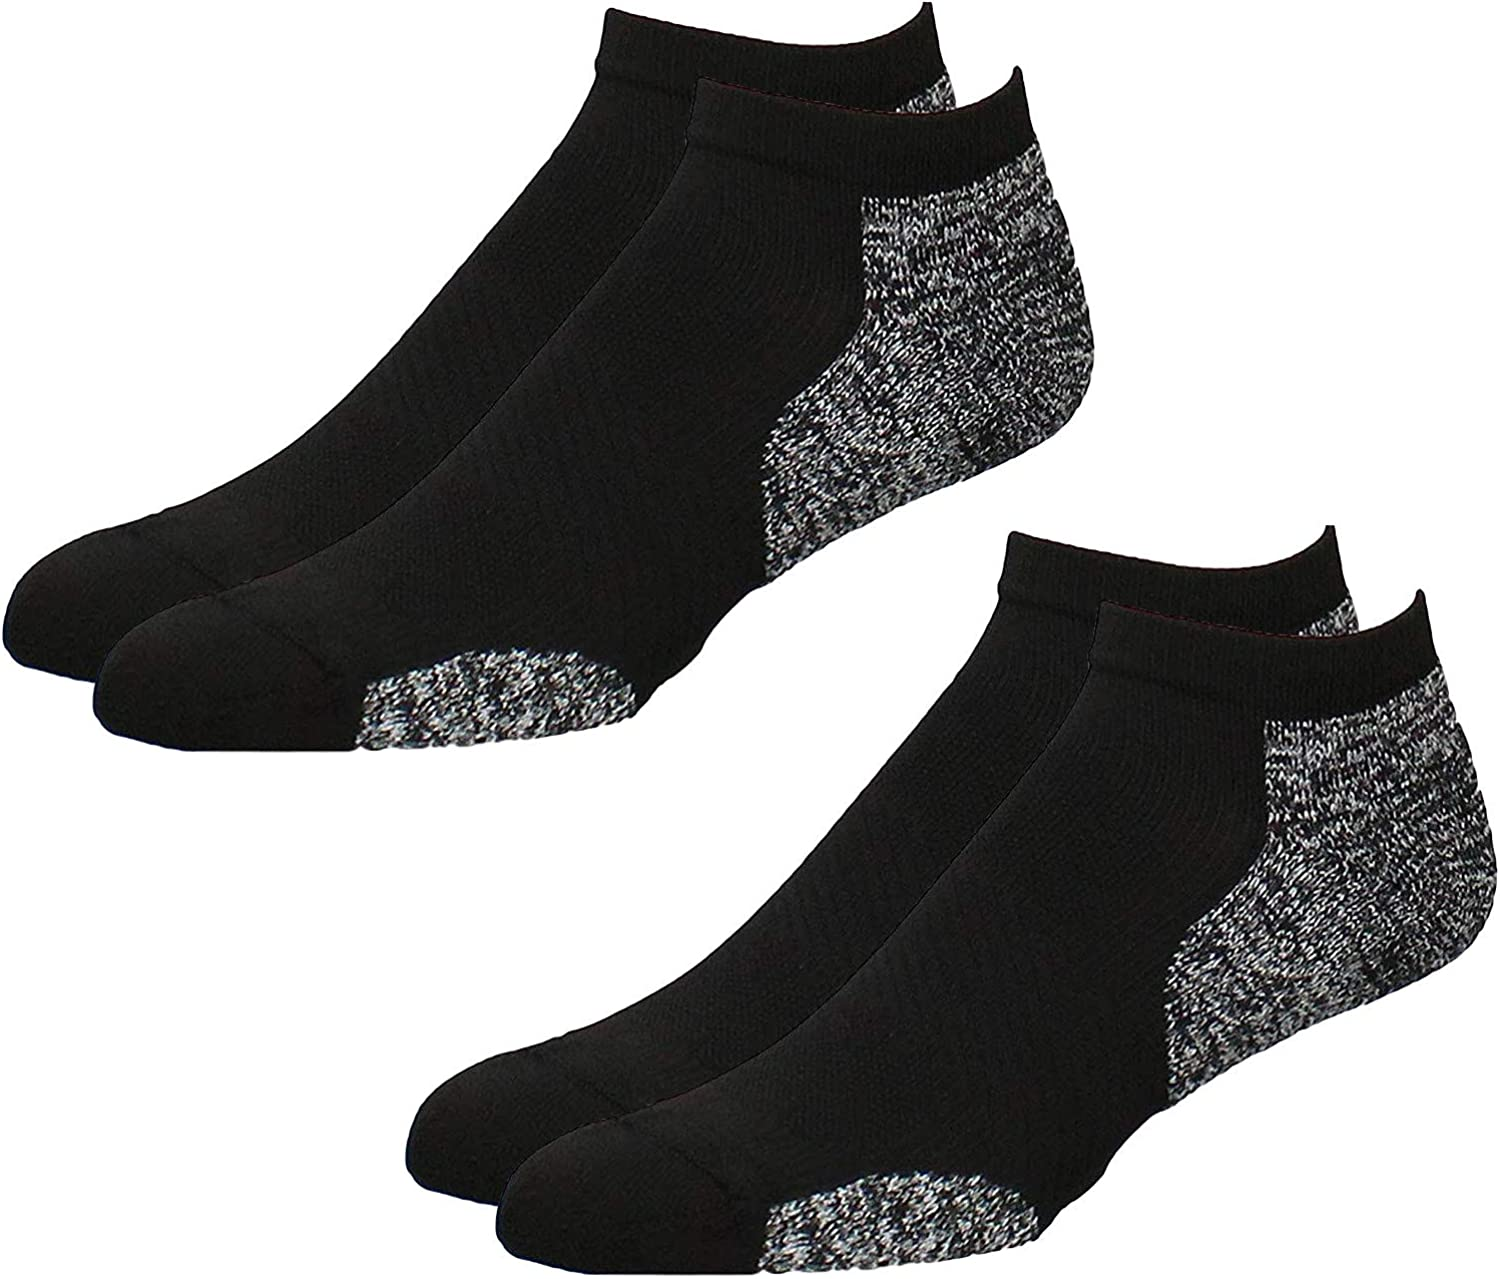 TCK Men's Plantar Fasciitis No Show Running Socks with Arch Support 2 Pack - Made from Recycled Materials